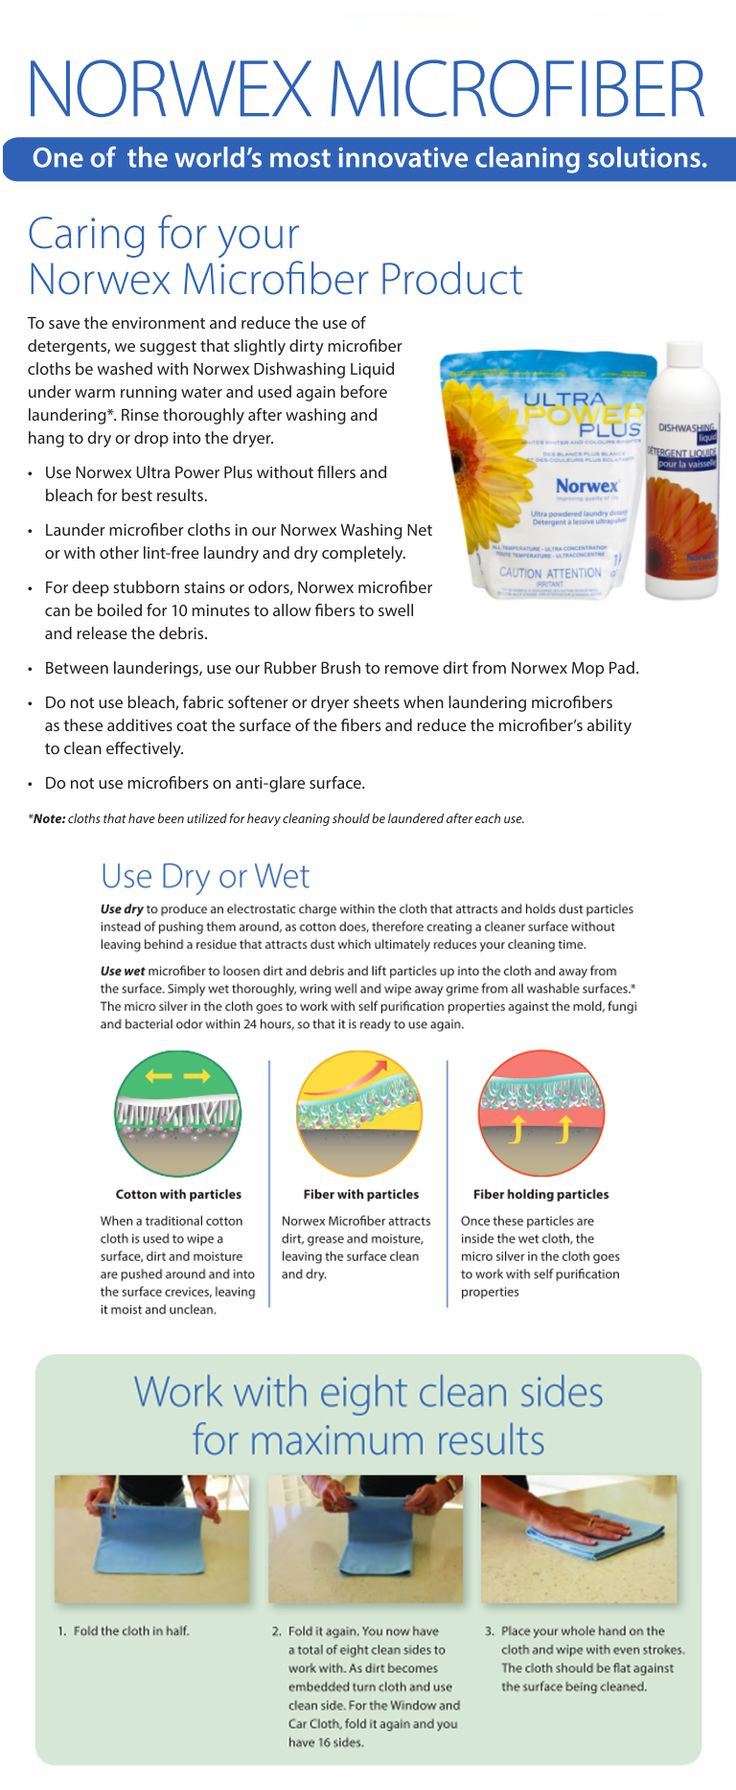 #Norwex microfiber laundering, care and usage instructions!  Pin this so you can come back to you whenever you need!   To DEEP Clean your cloths, put HOT water in a sink, 1-2 scoops of Norwex Laundry Detergent, soak overnight.  RINSE WELL & launder as usual.